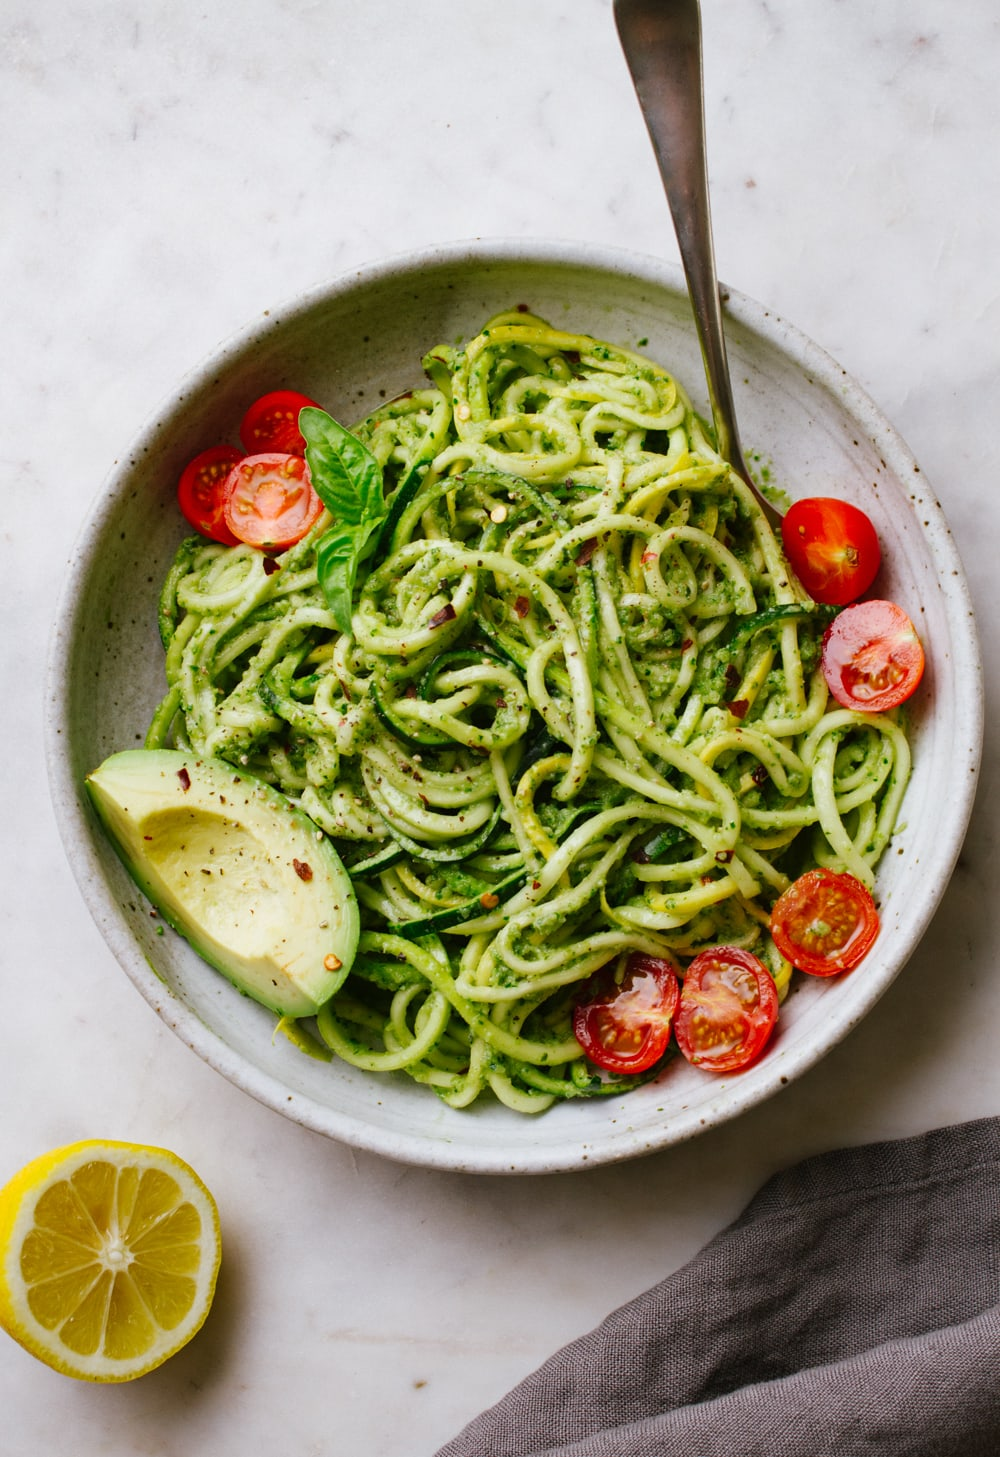 top down view of zucchini noodles with vegan zucchini pesto in a bowl with cherry tomatoes and avocado